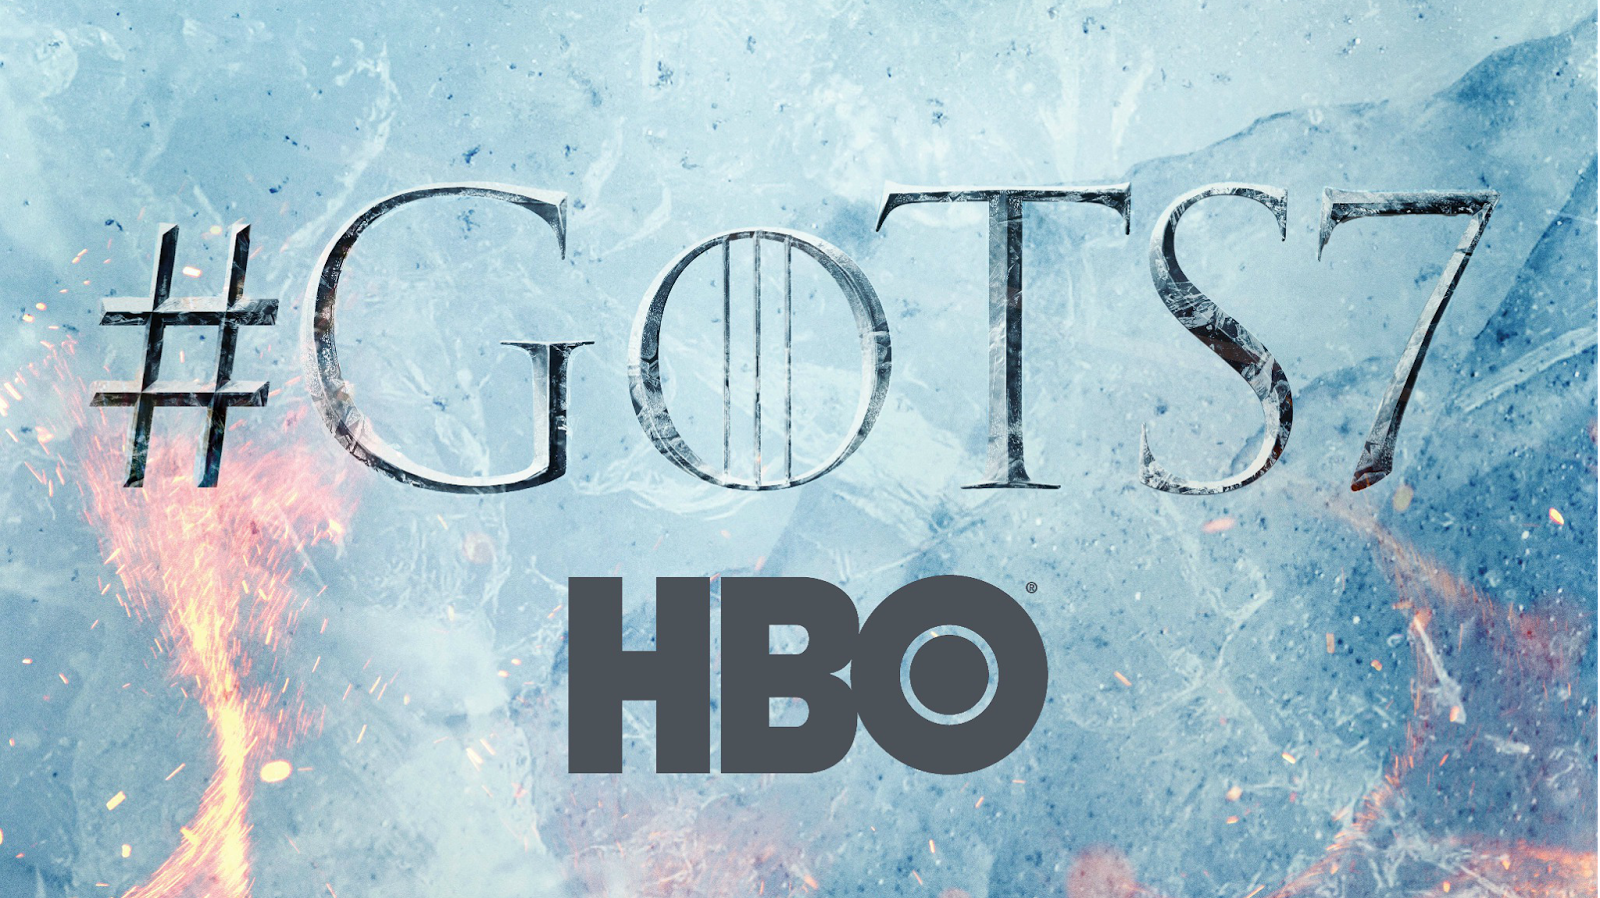 Writing About Game of Thrones Season 7 - Game of Thrones Season 7 Teaser Poster